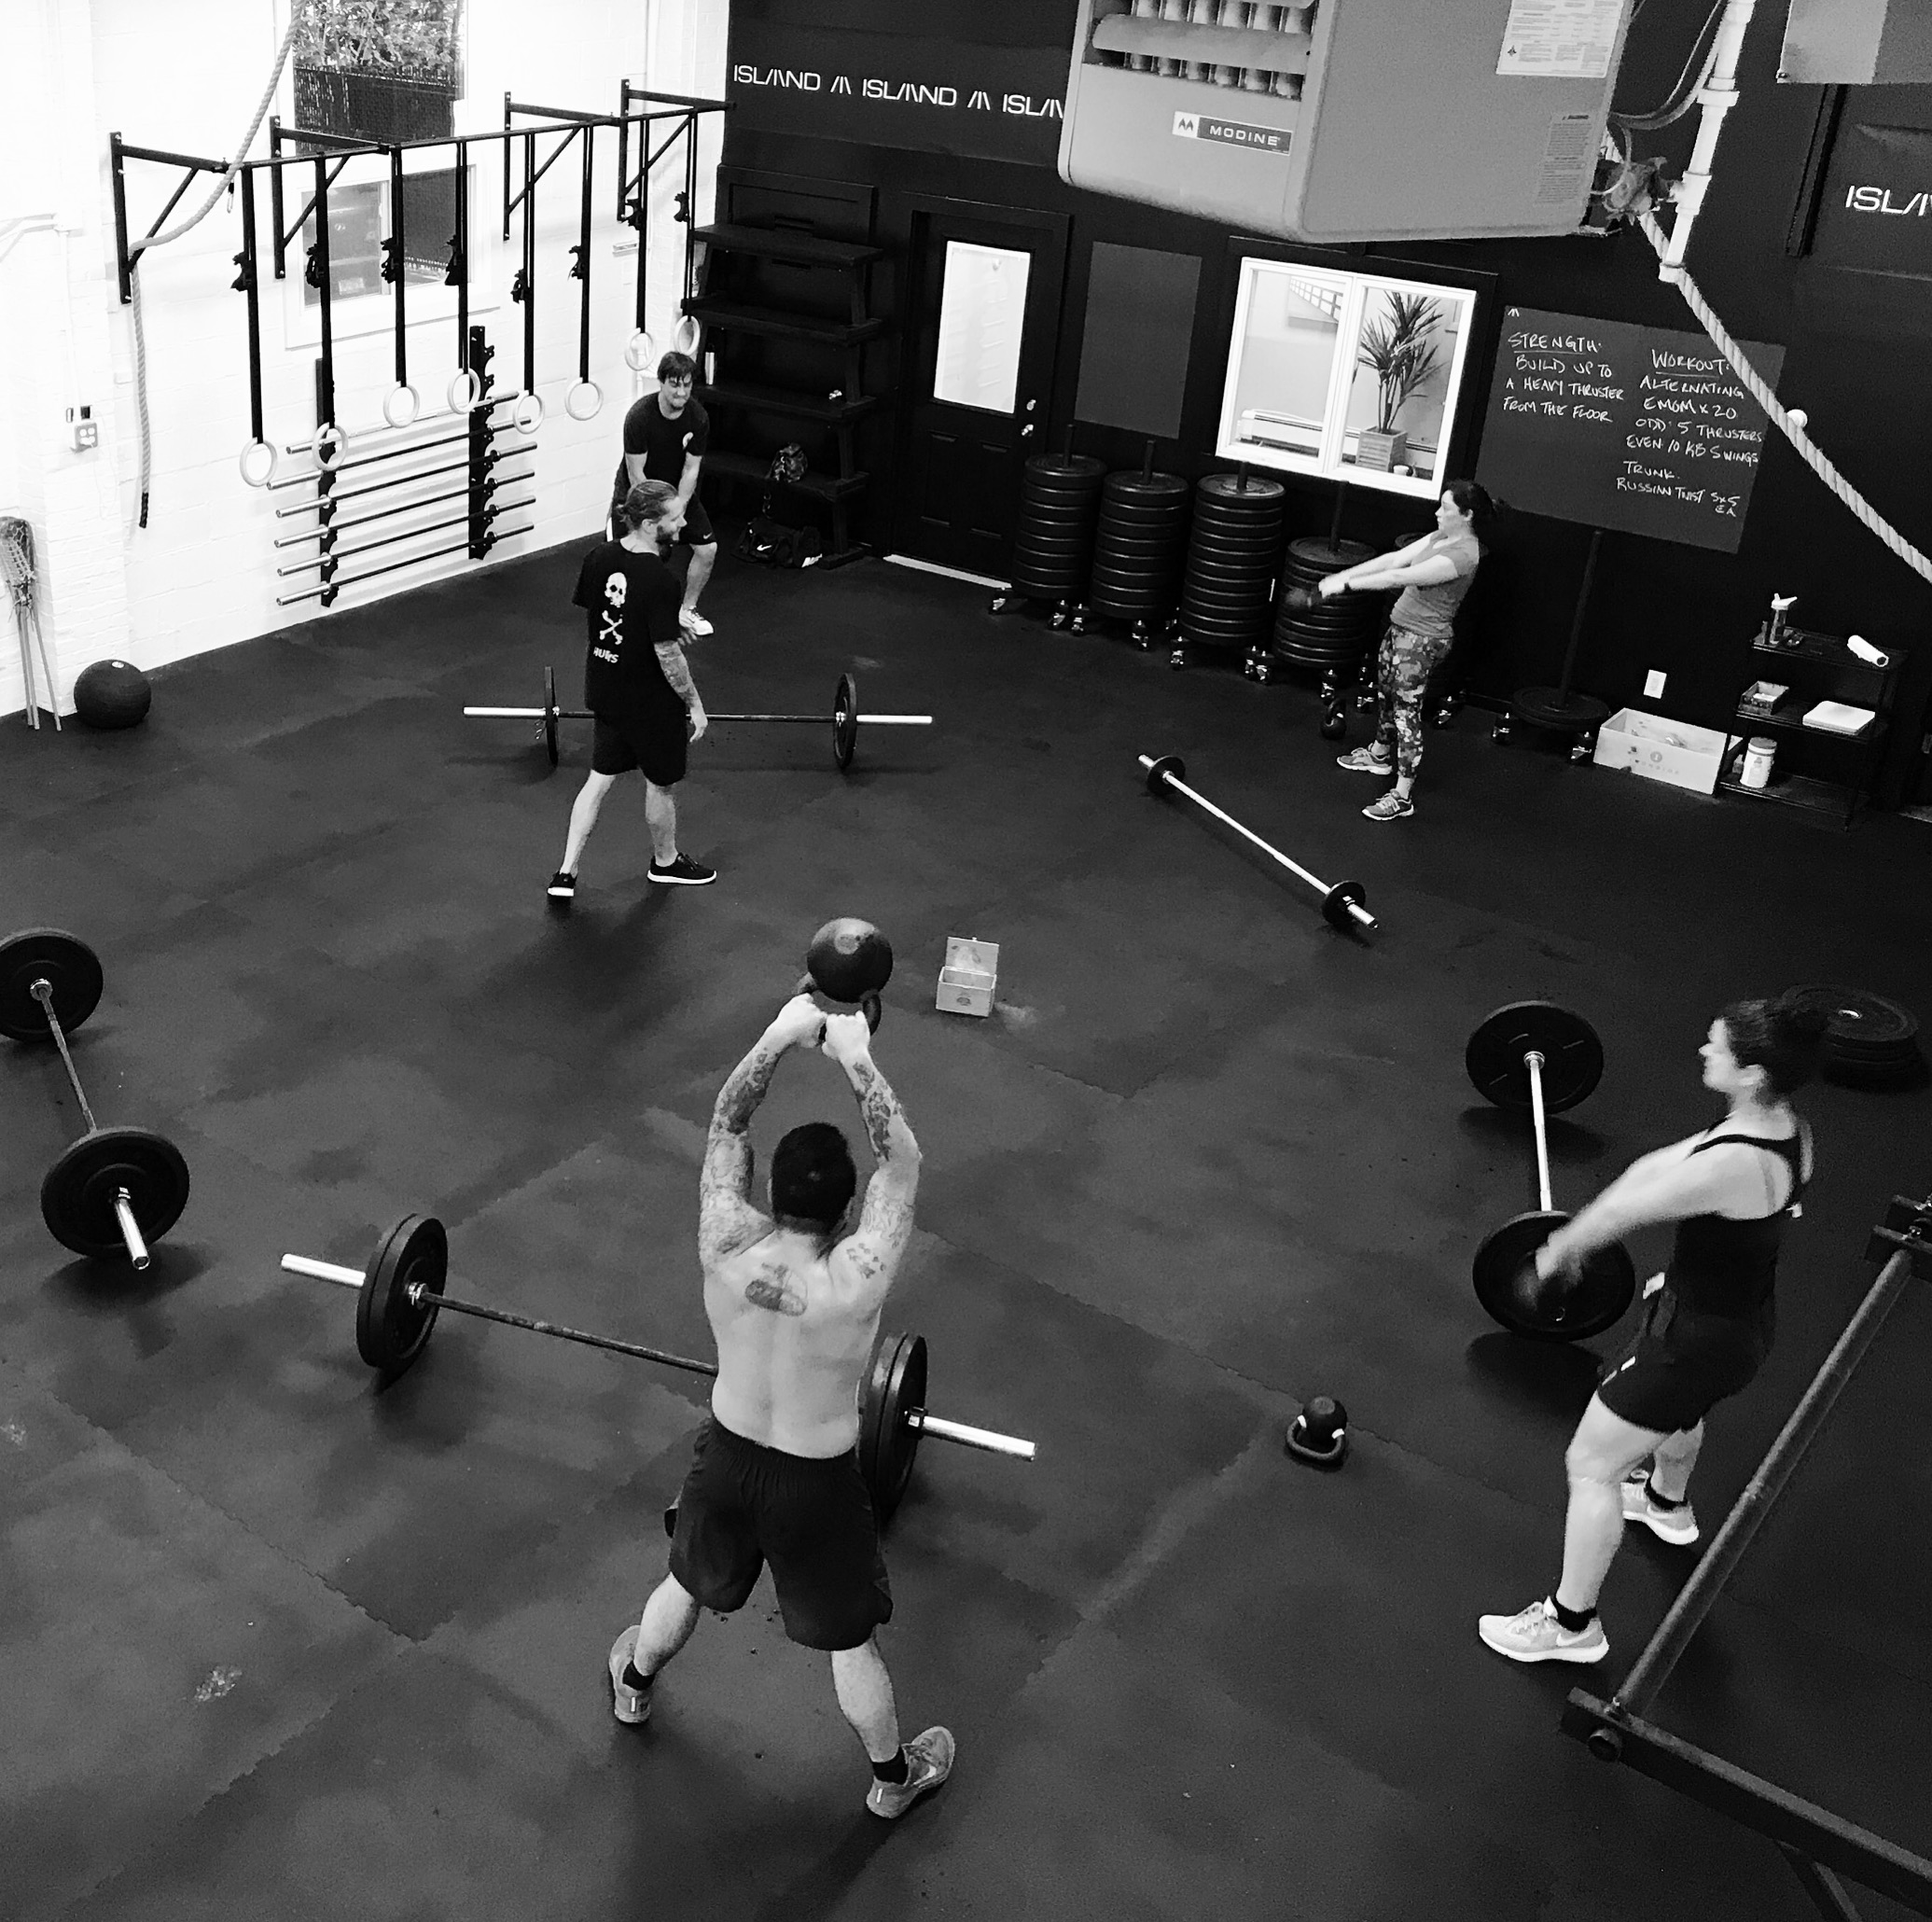 8 18 17 Crossfit Wod Island Athletics Training Workouts For Beginners